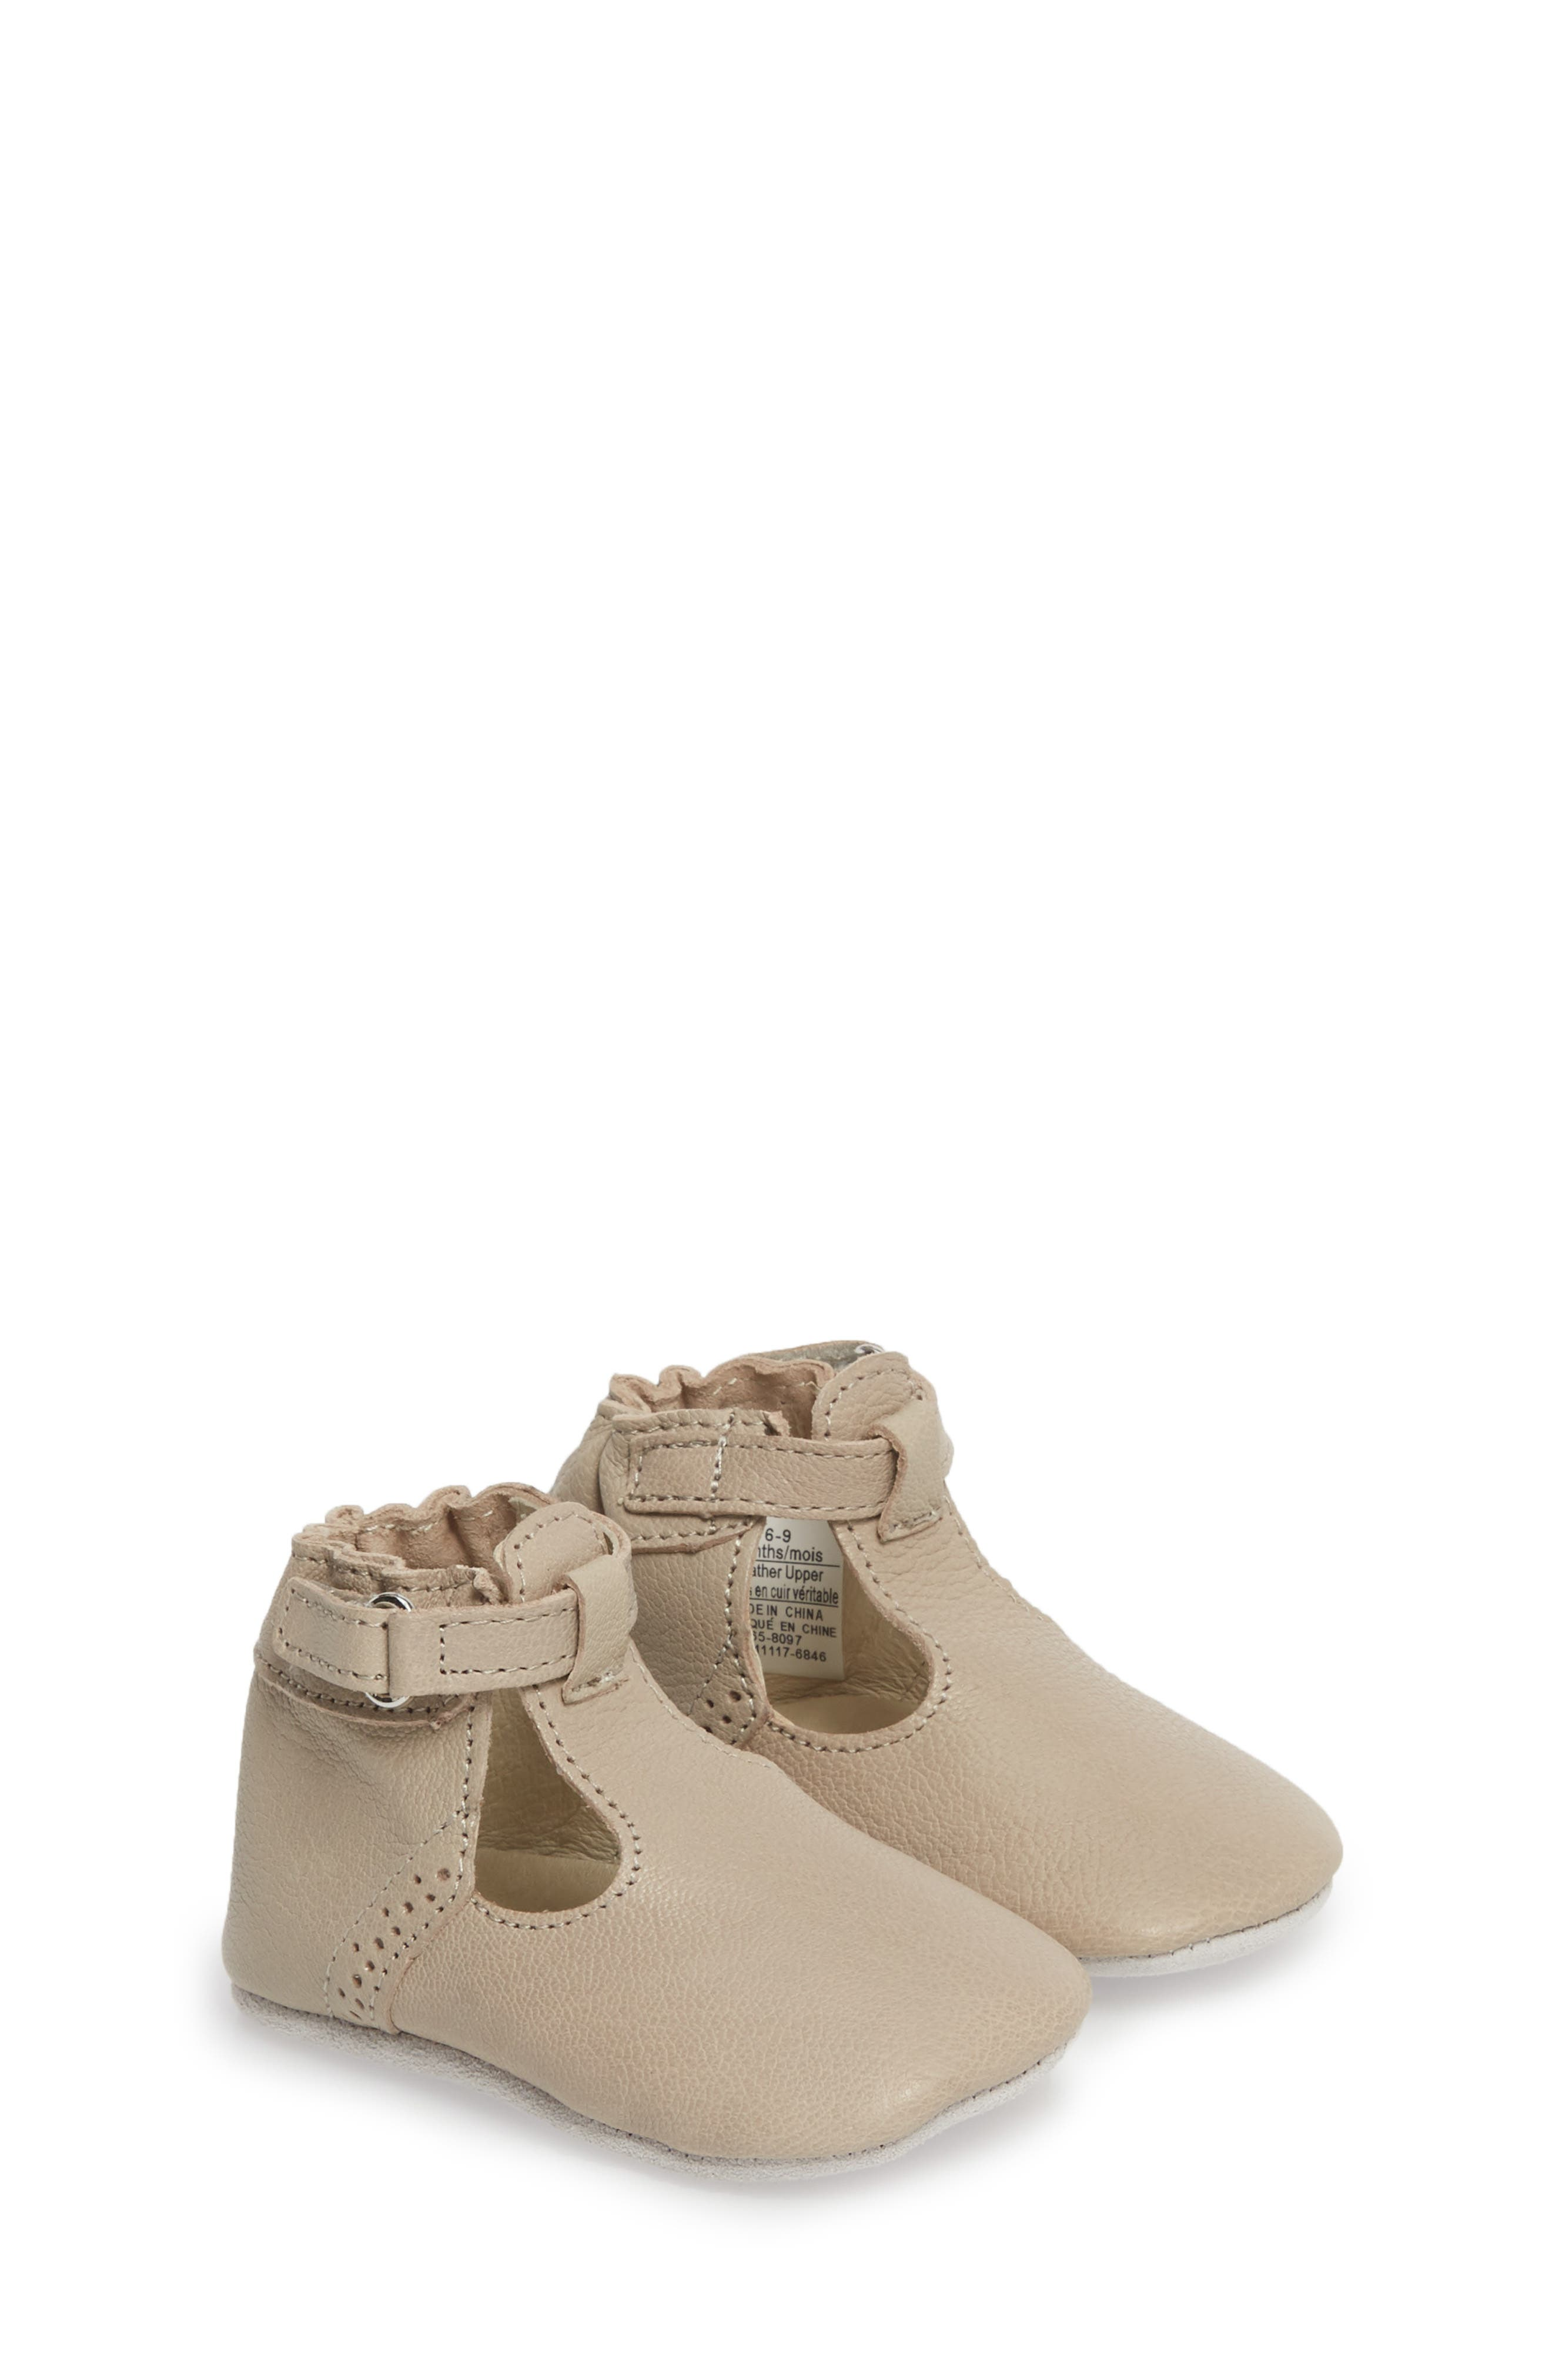 Penny T-Strap Mary Jane Crib Shoe,                             Main thumbnail 1, color,                             TAUPE